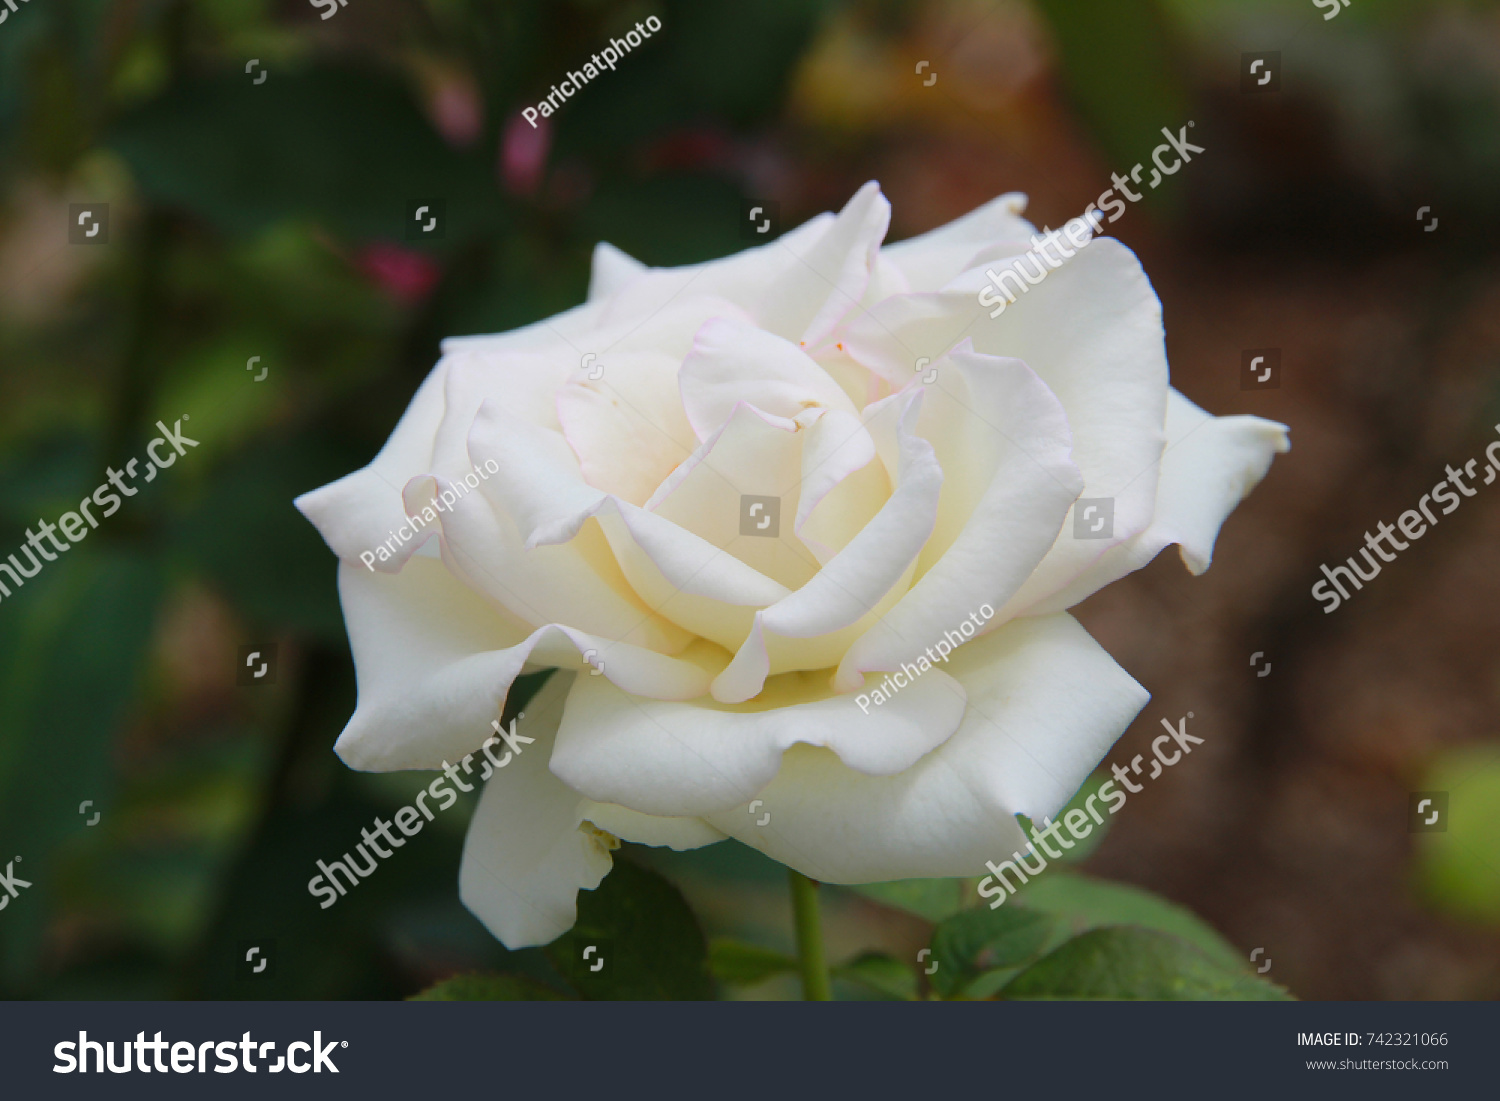 White Rose In The Garden Natural Beauty And A Symbol Of Purity Ez